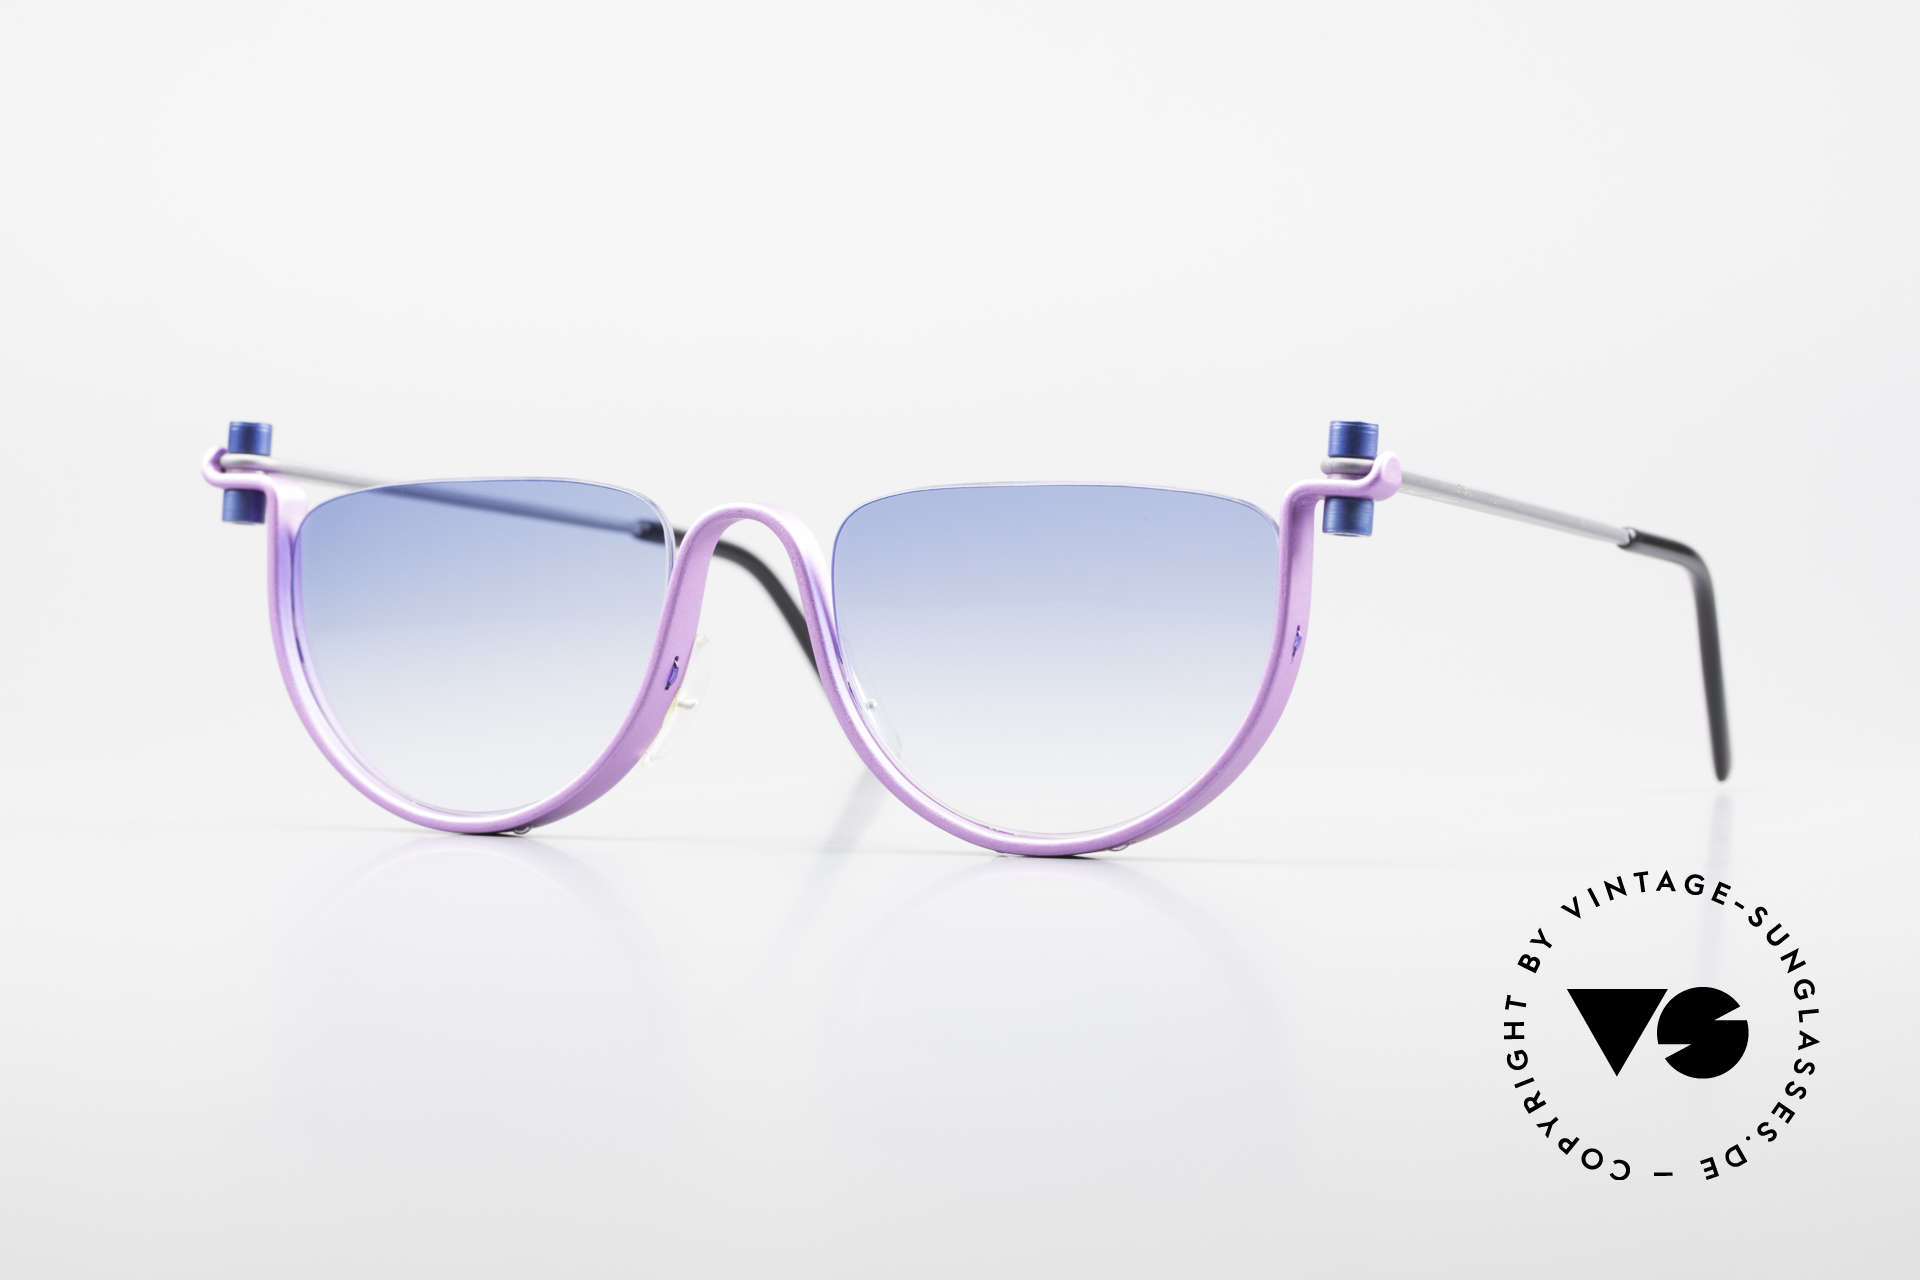 ProDesign No2 Rare Vintage Movie Shades 90's, Pro Design N° TWO- Optic Studio Denmark Glasses, Made for Men and Women